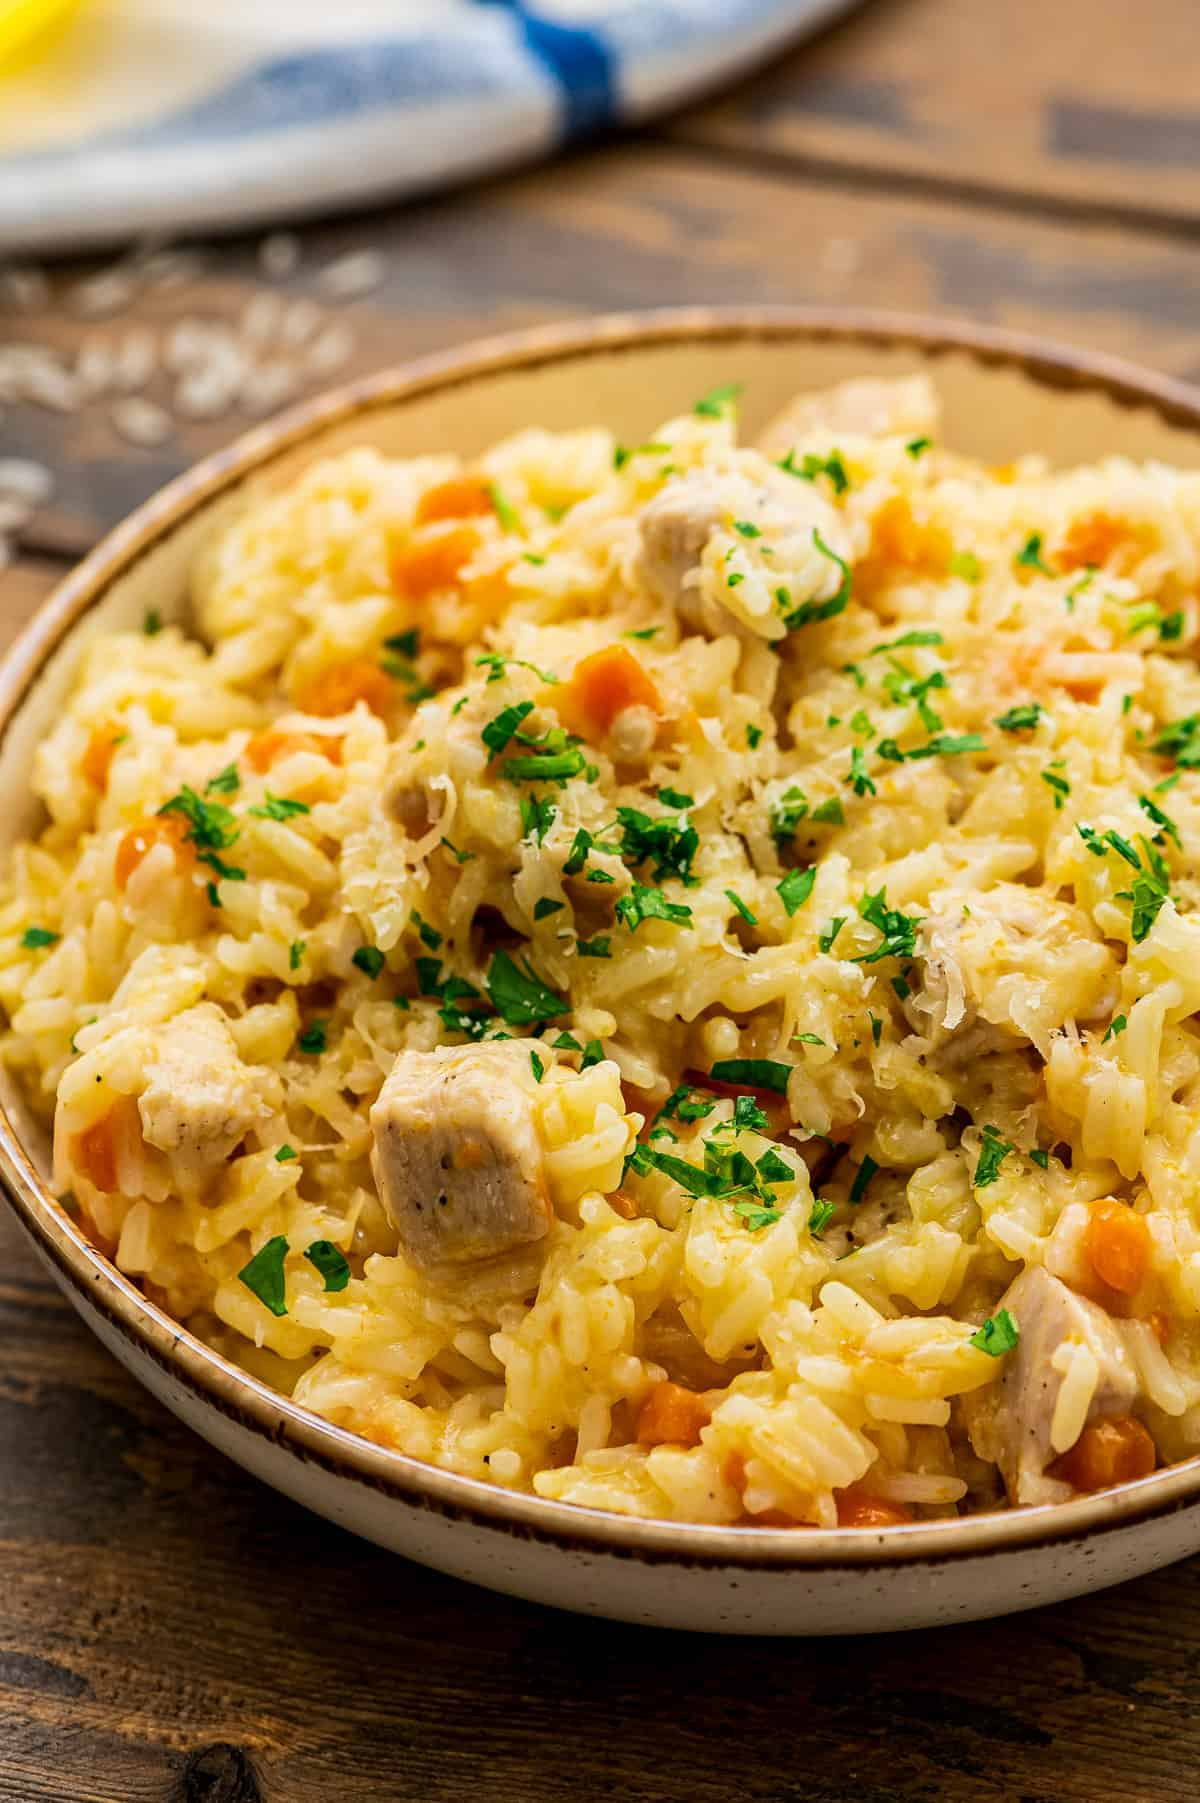 Bowl of Chicken and Rice with carrots topped with chopped parsley